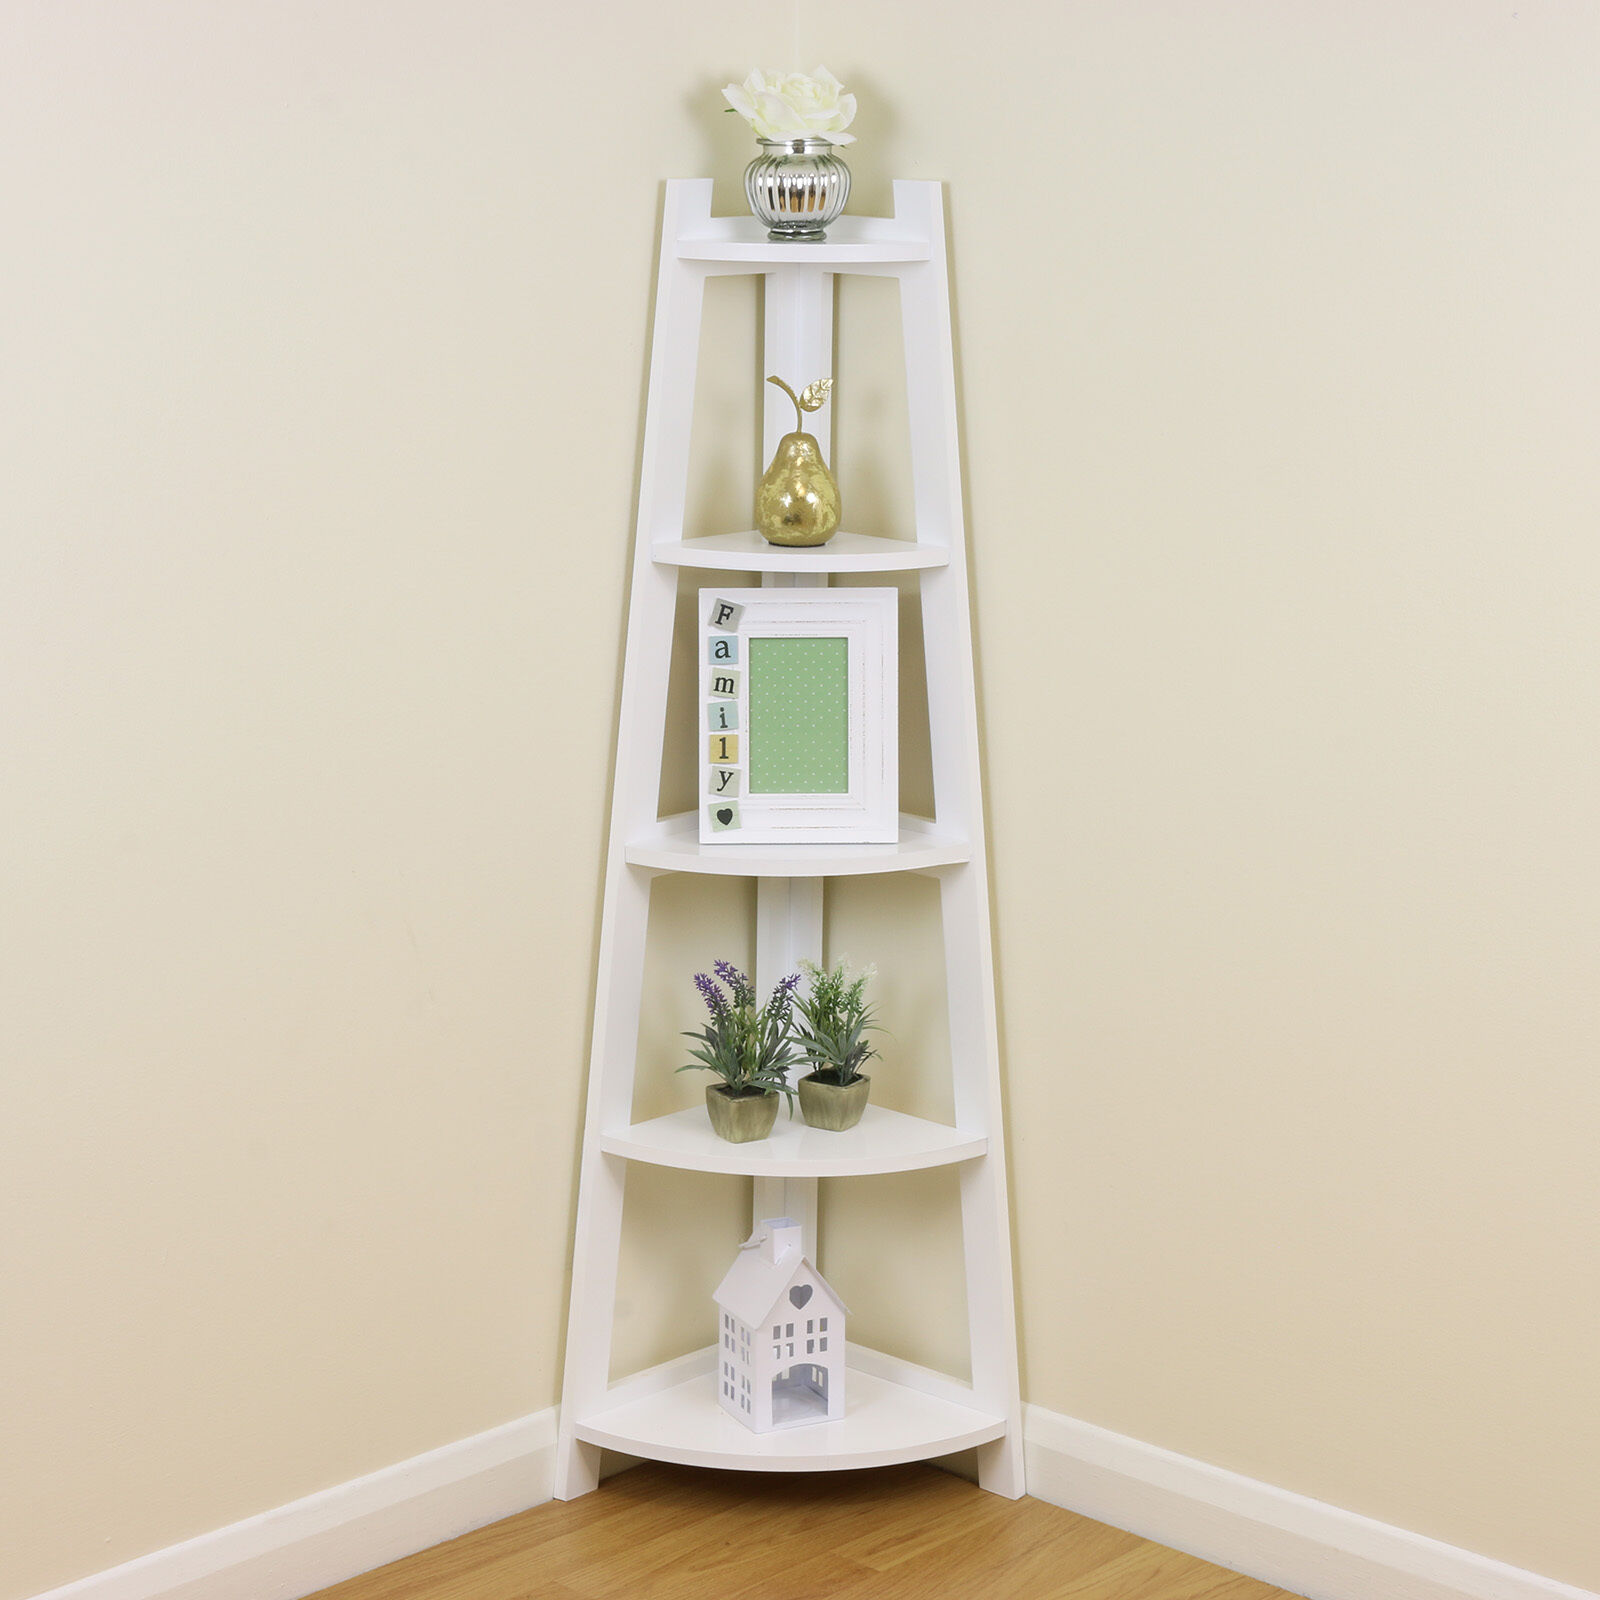 WHITE 5 TIER Tall Corner Shelf/Shelving Unit Display Stand Home ...